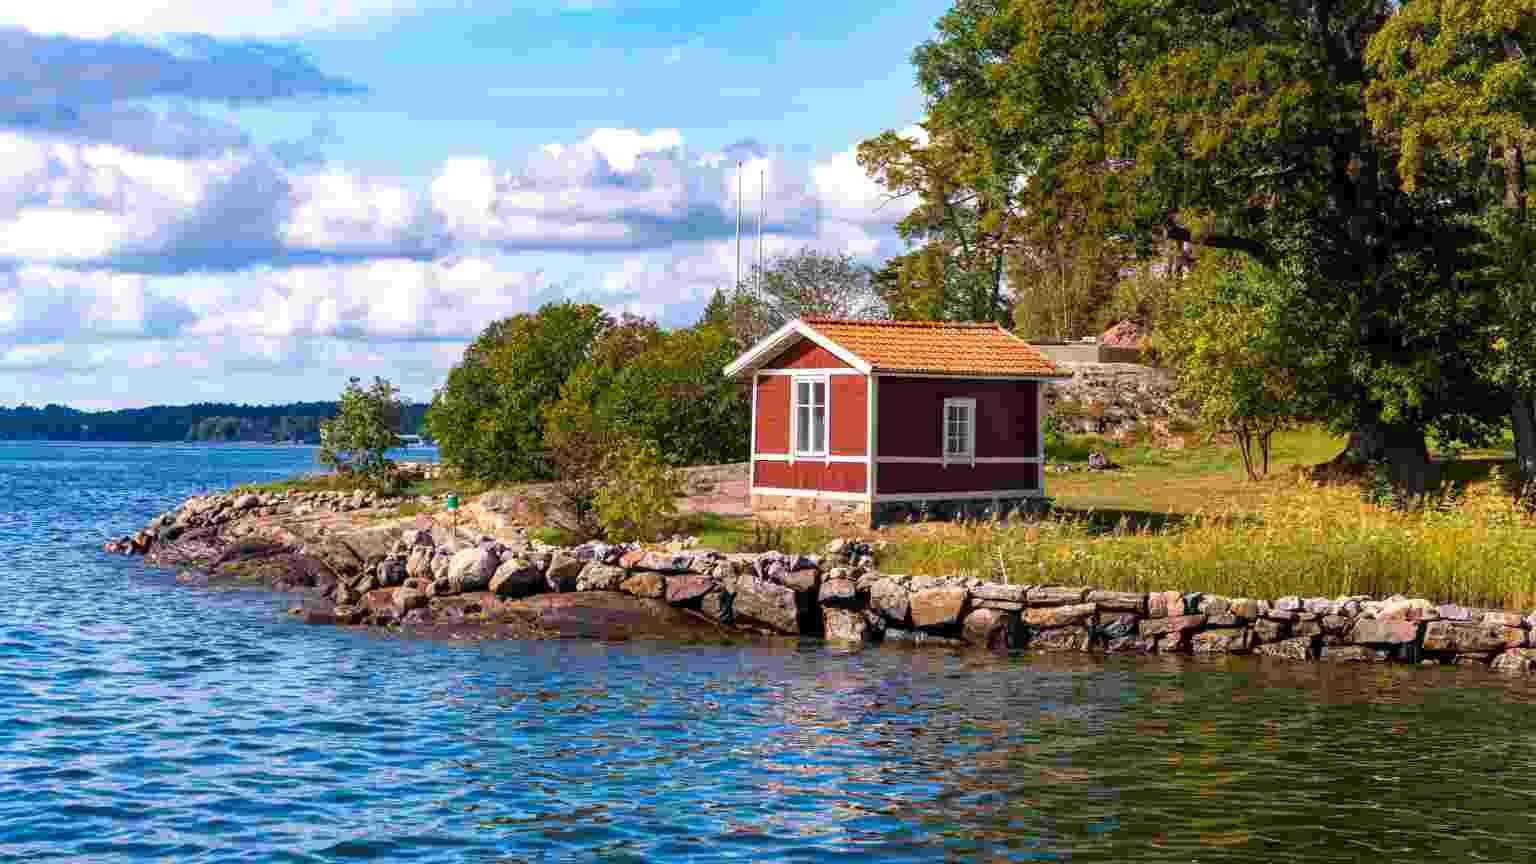 Wooden hut in traditional red at the Archipelago near Stockholm, Sweden